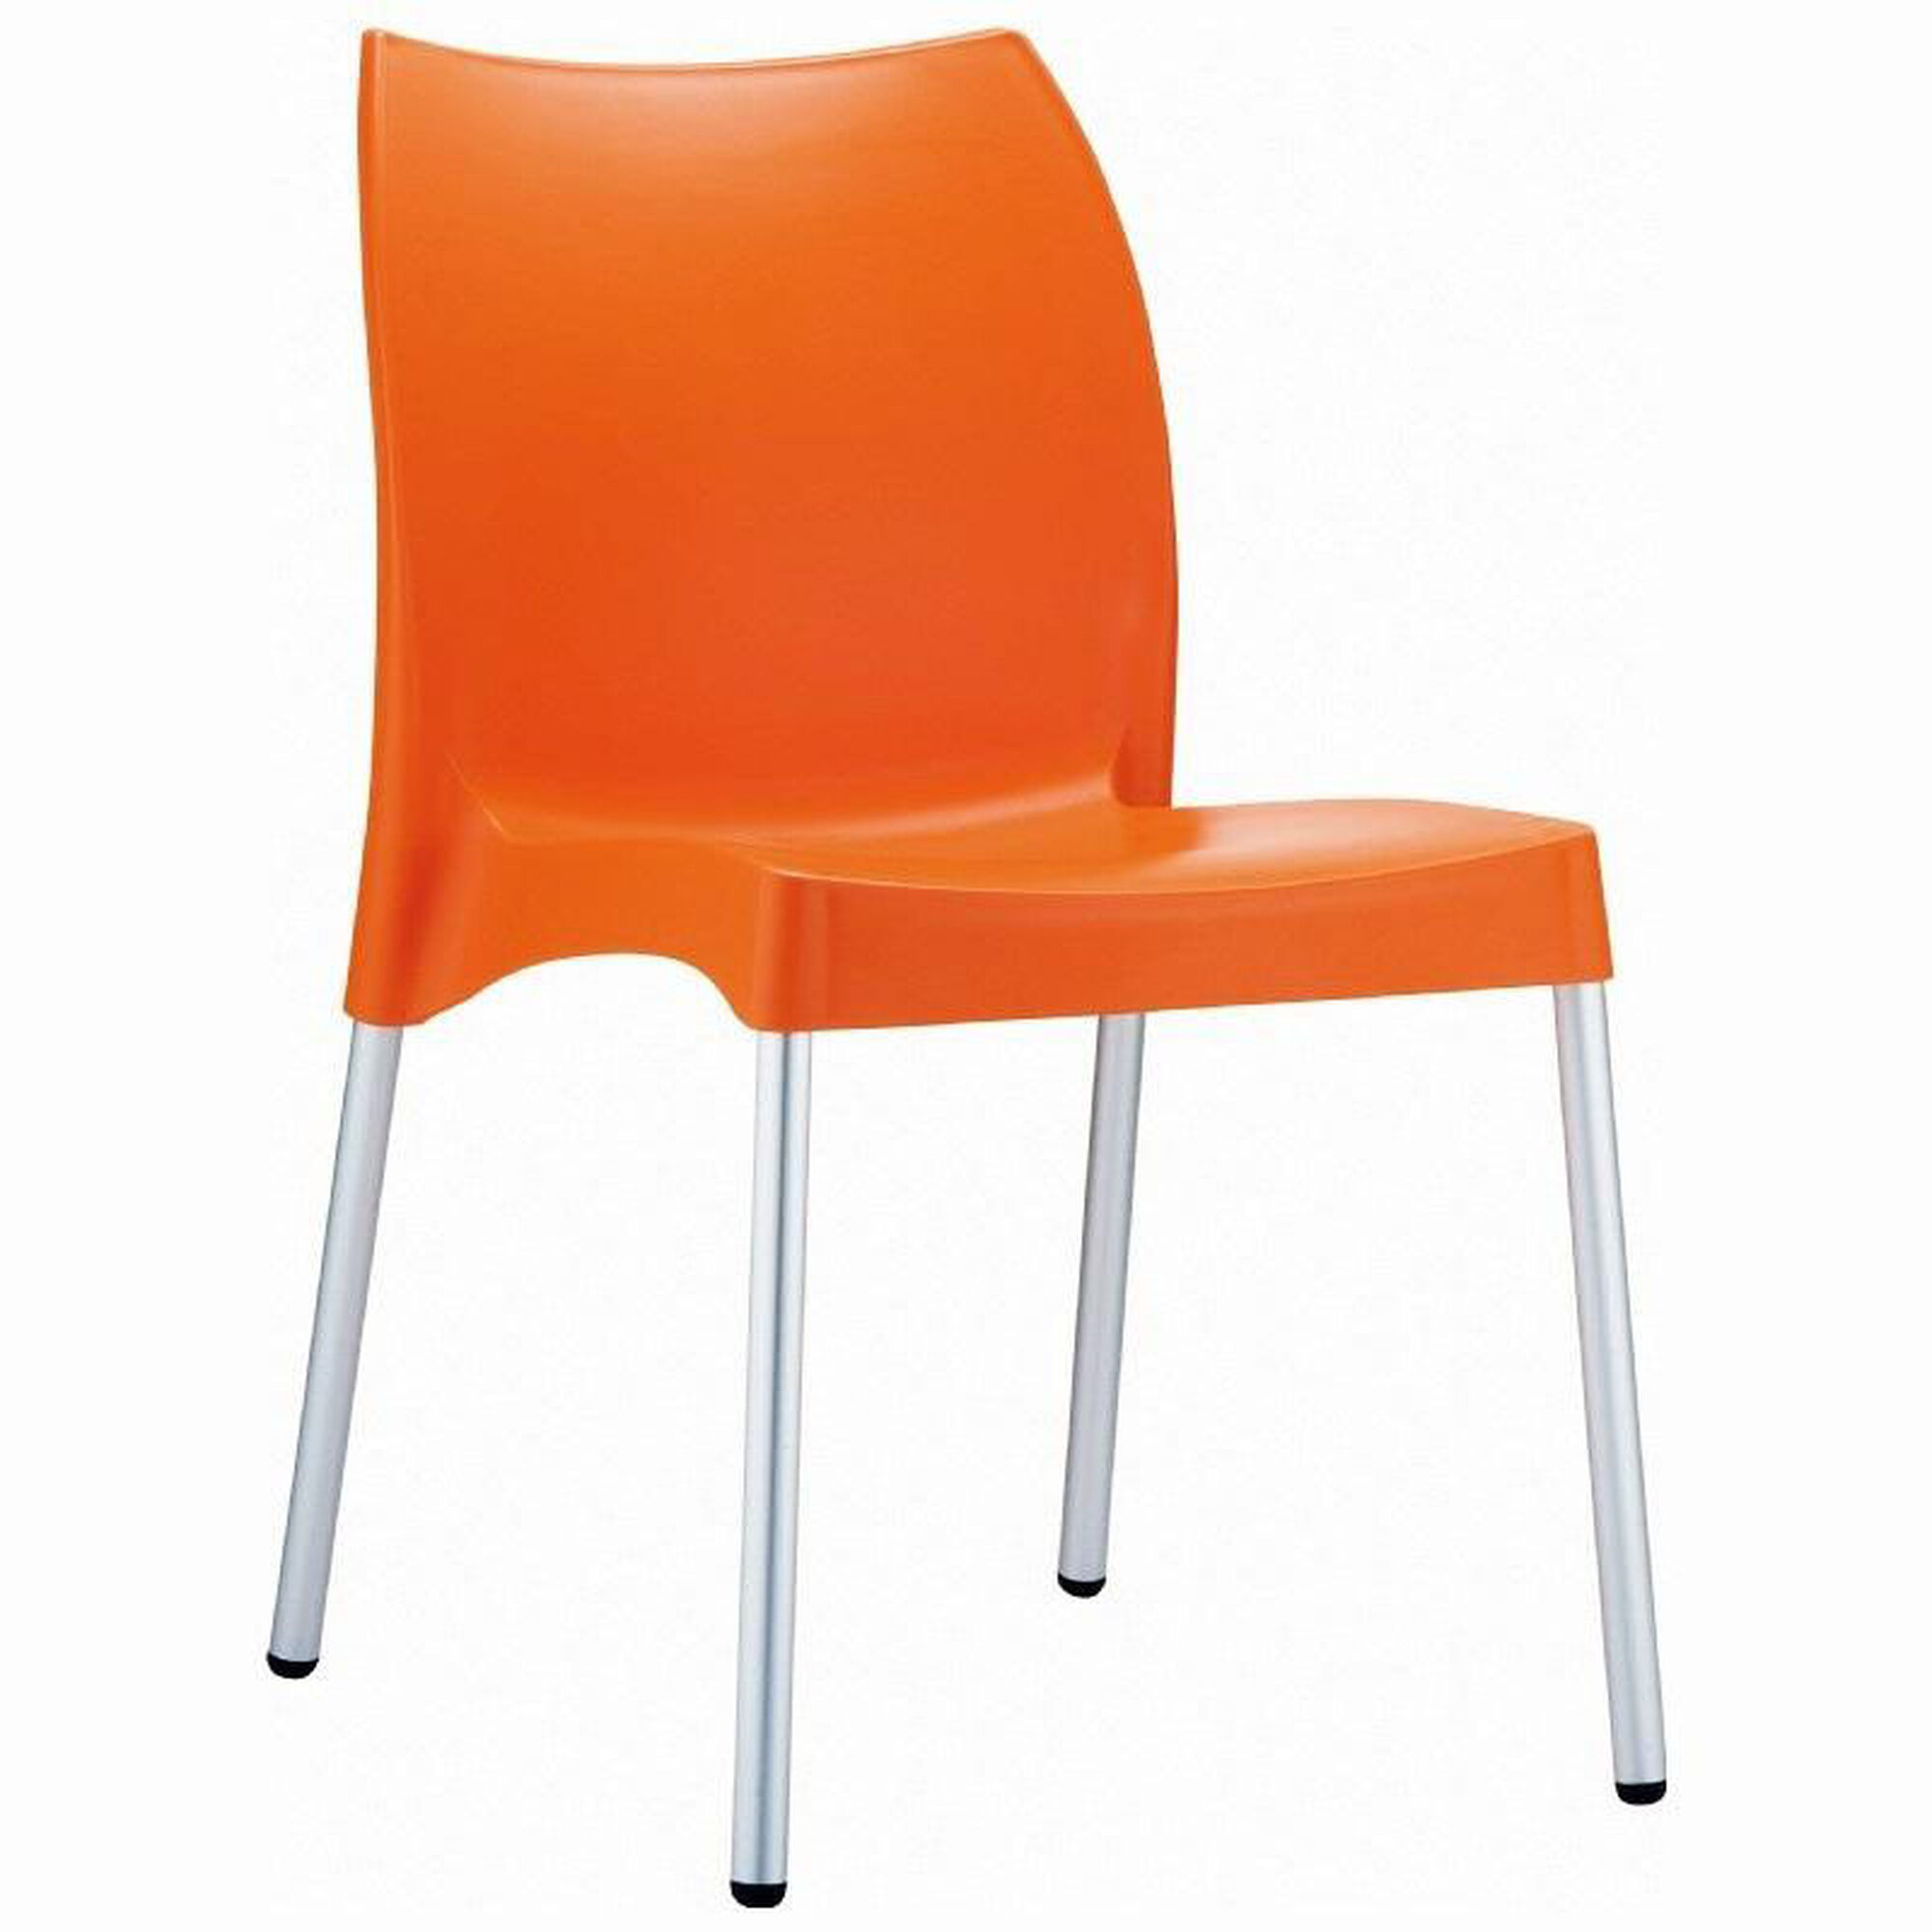 Fine Vita Outdoor Resin Stackable Dining Chair With Aluminum Legs Orange Ncnpc Chair Design For Home Ncnpcorg